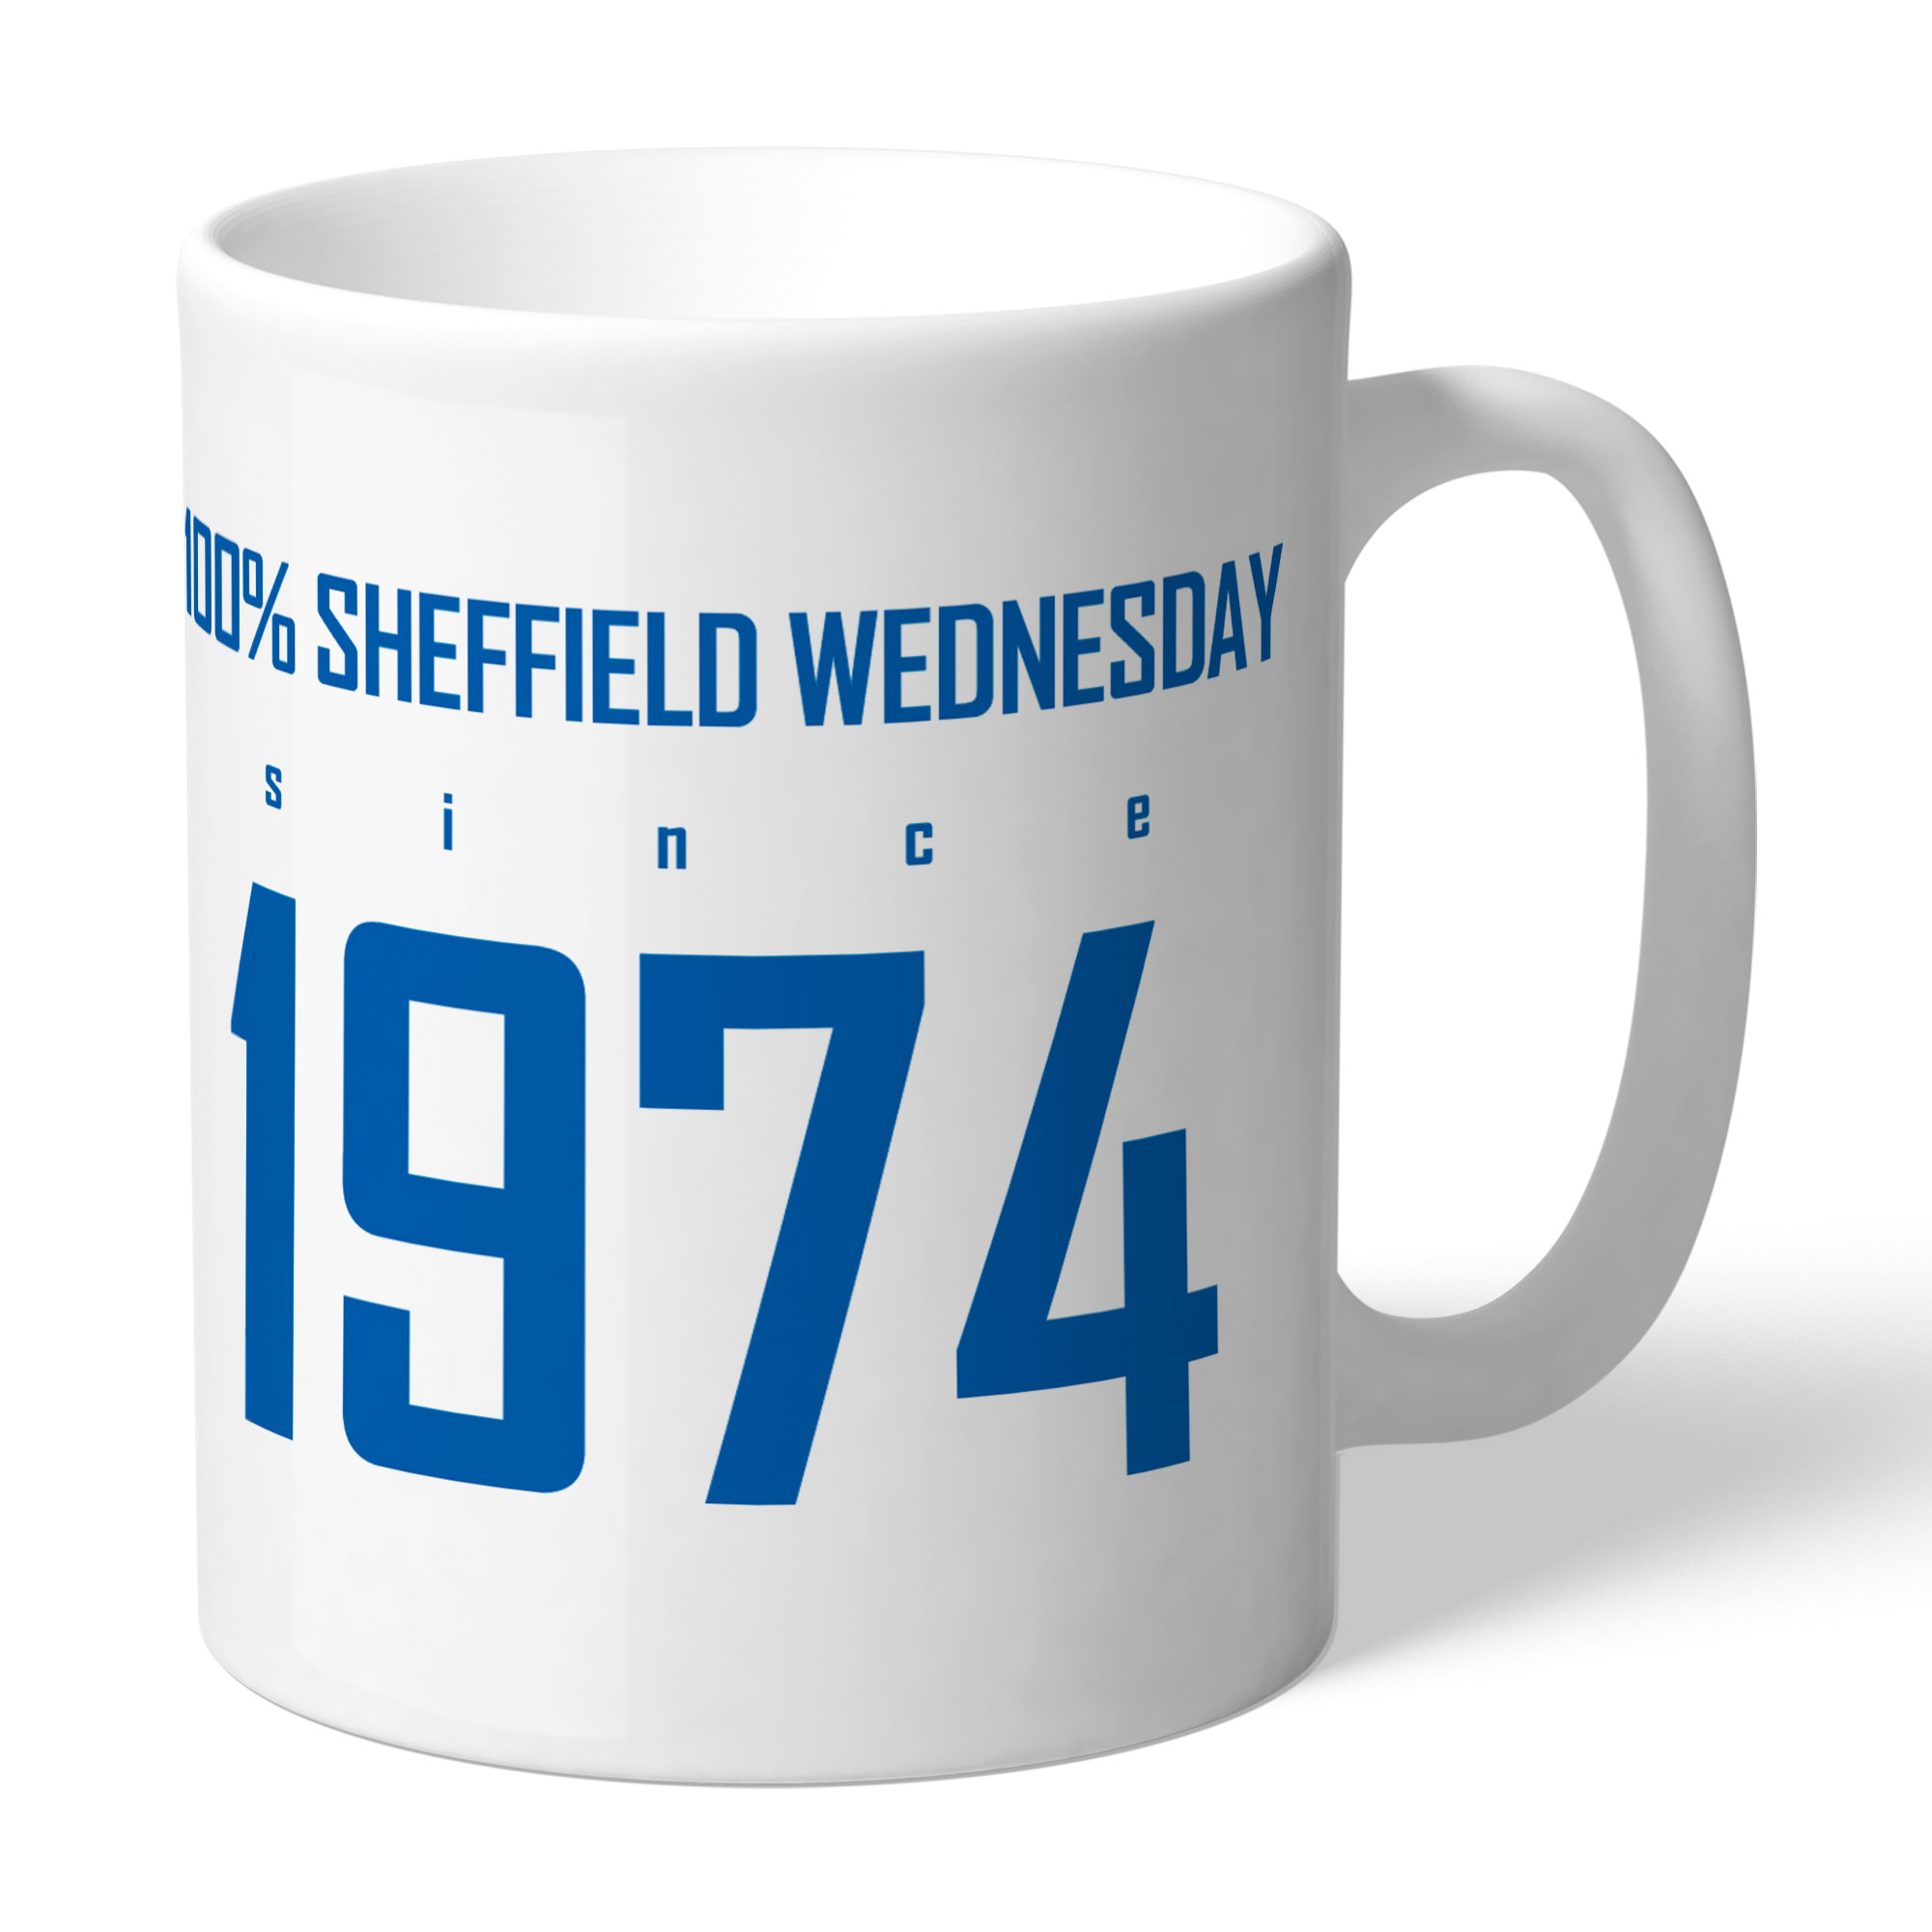 Sheffield Wednesday FC 100 Percent Mug